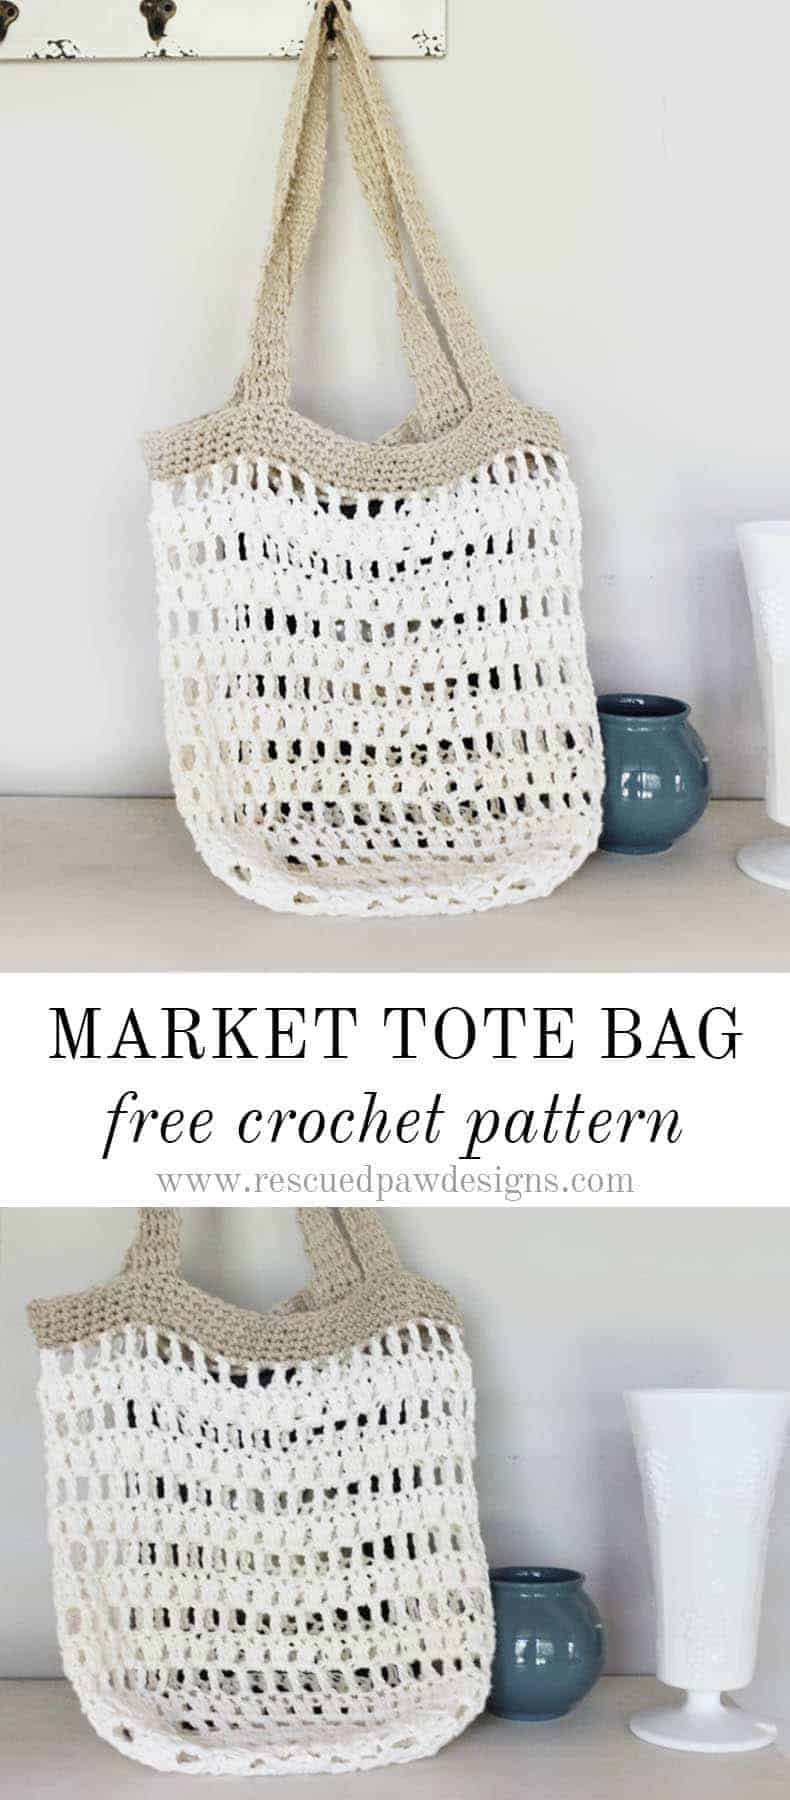 Beginner Crochet Market Tote Bag Rescued Paw Designs